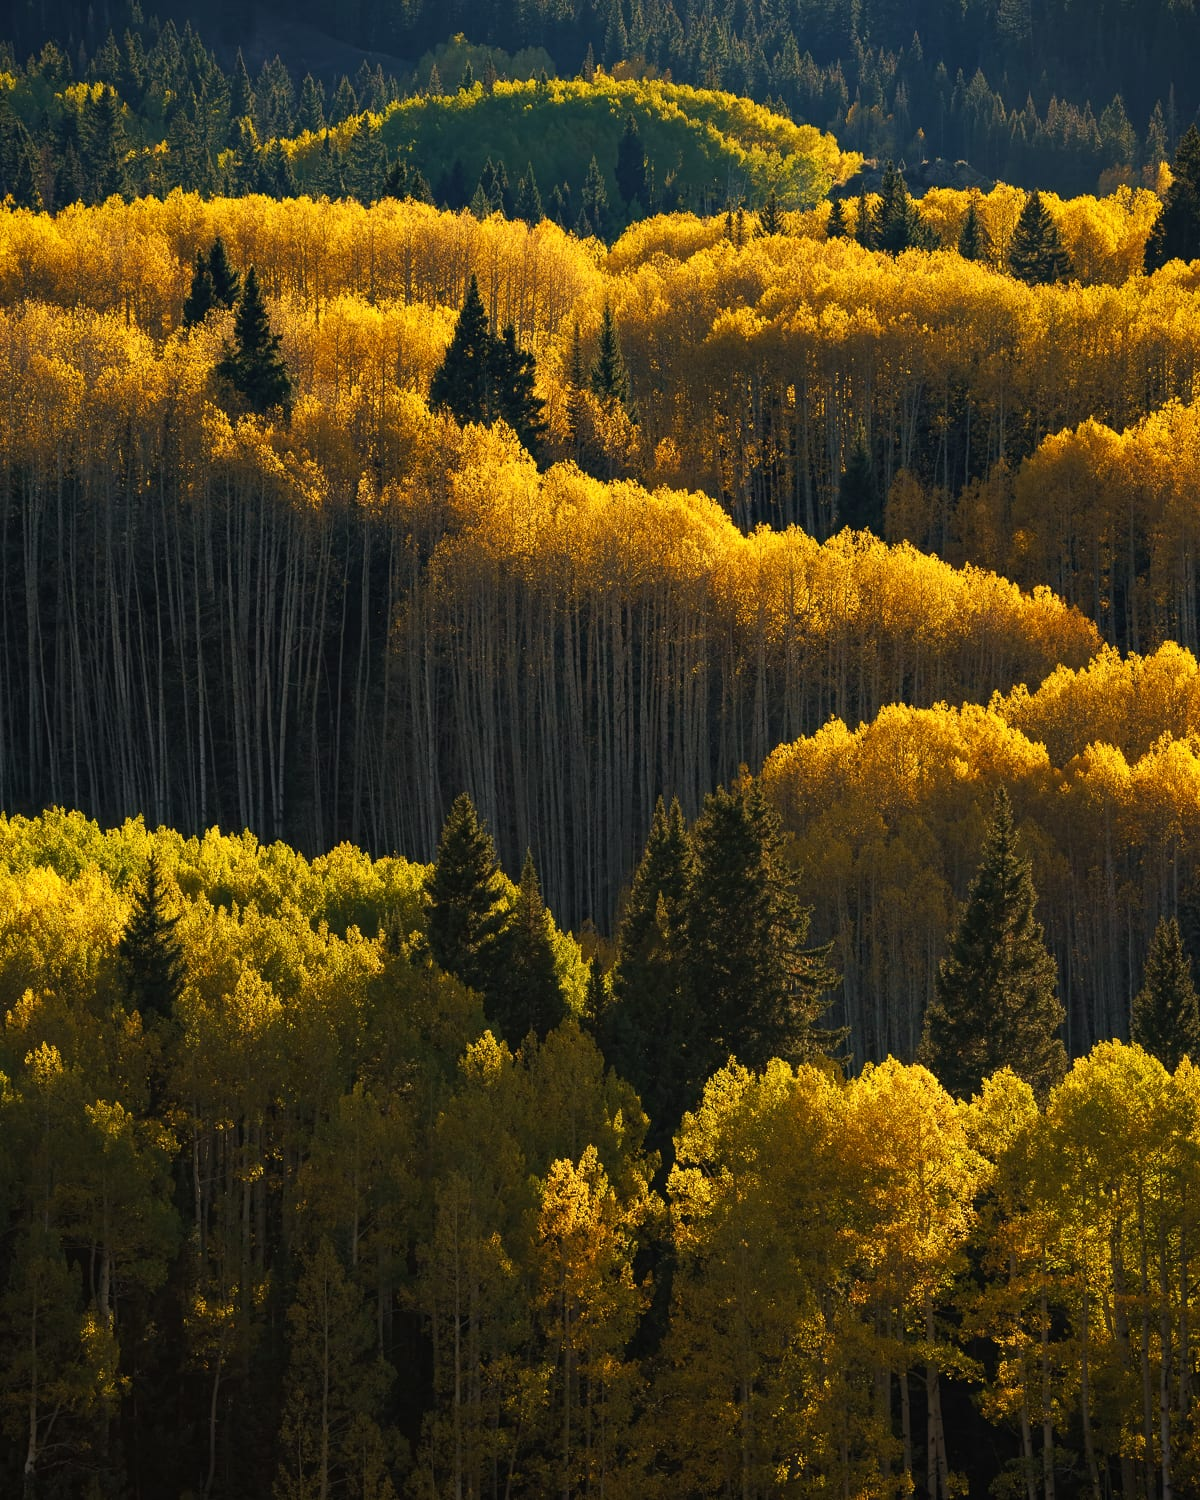 Pine trees and lines of aspen in fall colors